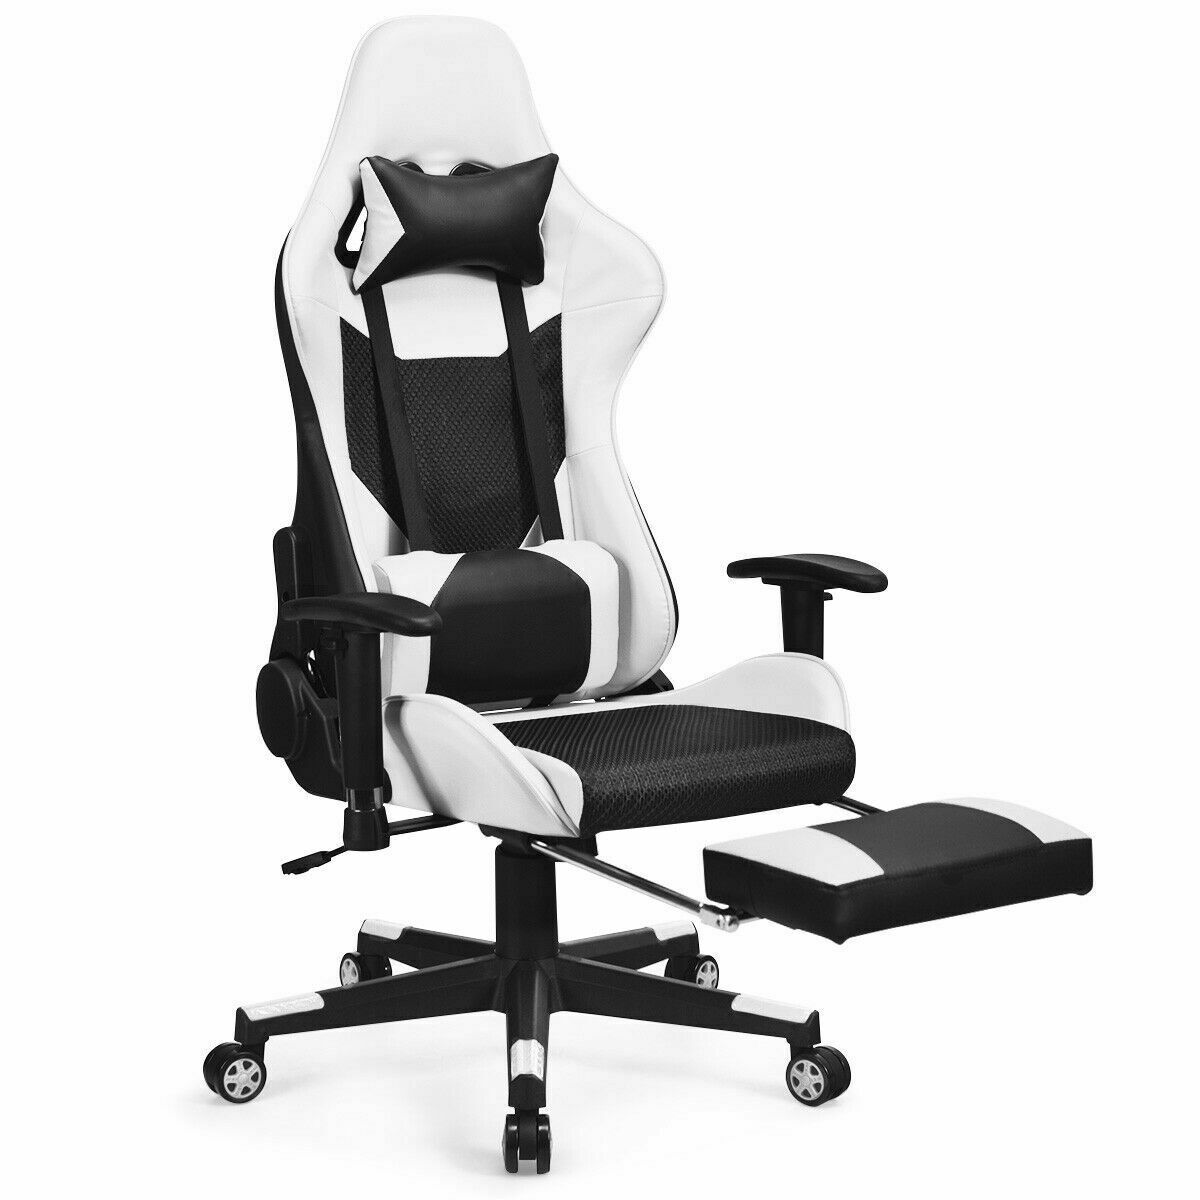 Massage Gaming Chair Recliner Racing Chair Height Adjustable w/ Lumbar Support